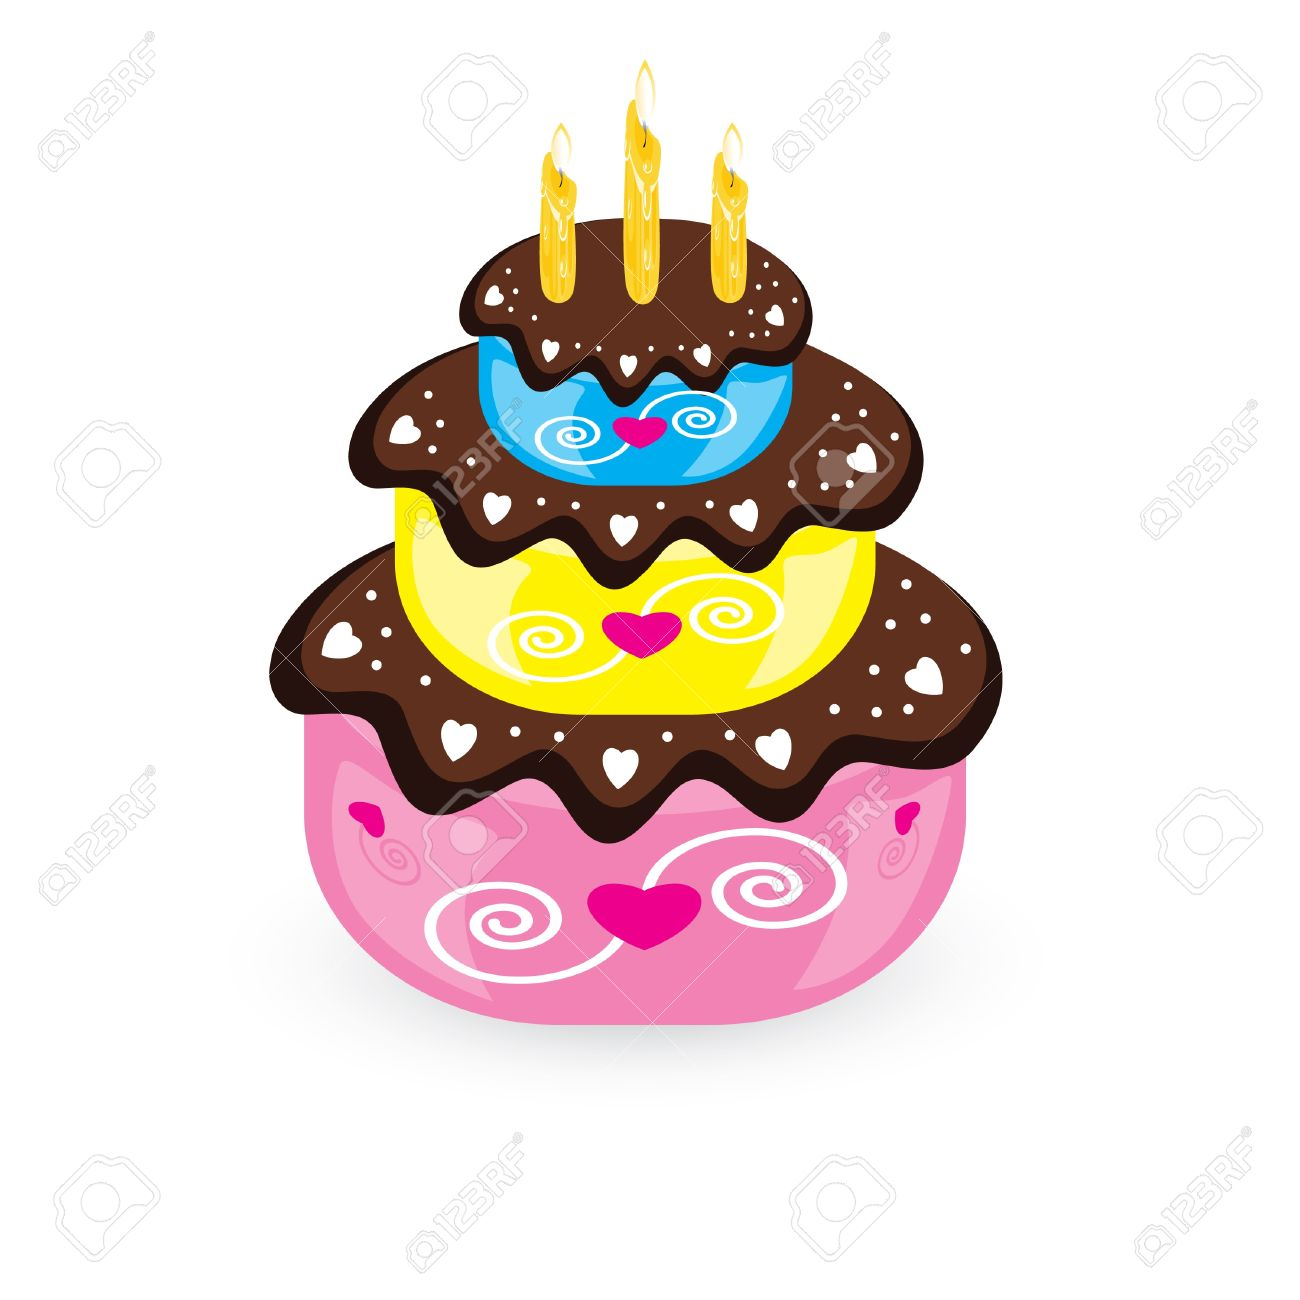 Birthday Cake And Candle Illustration On White Background Royalty Free Cliparts Vectors And Stock Illustration Image 10719290